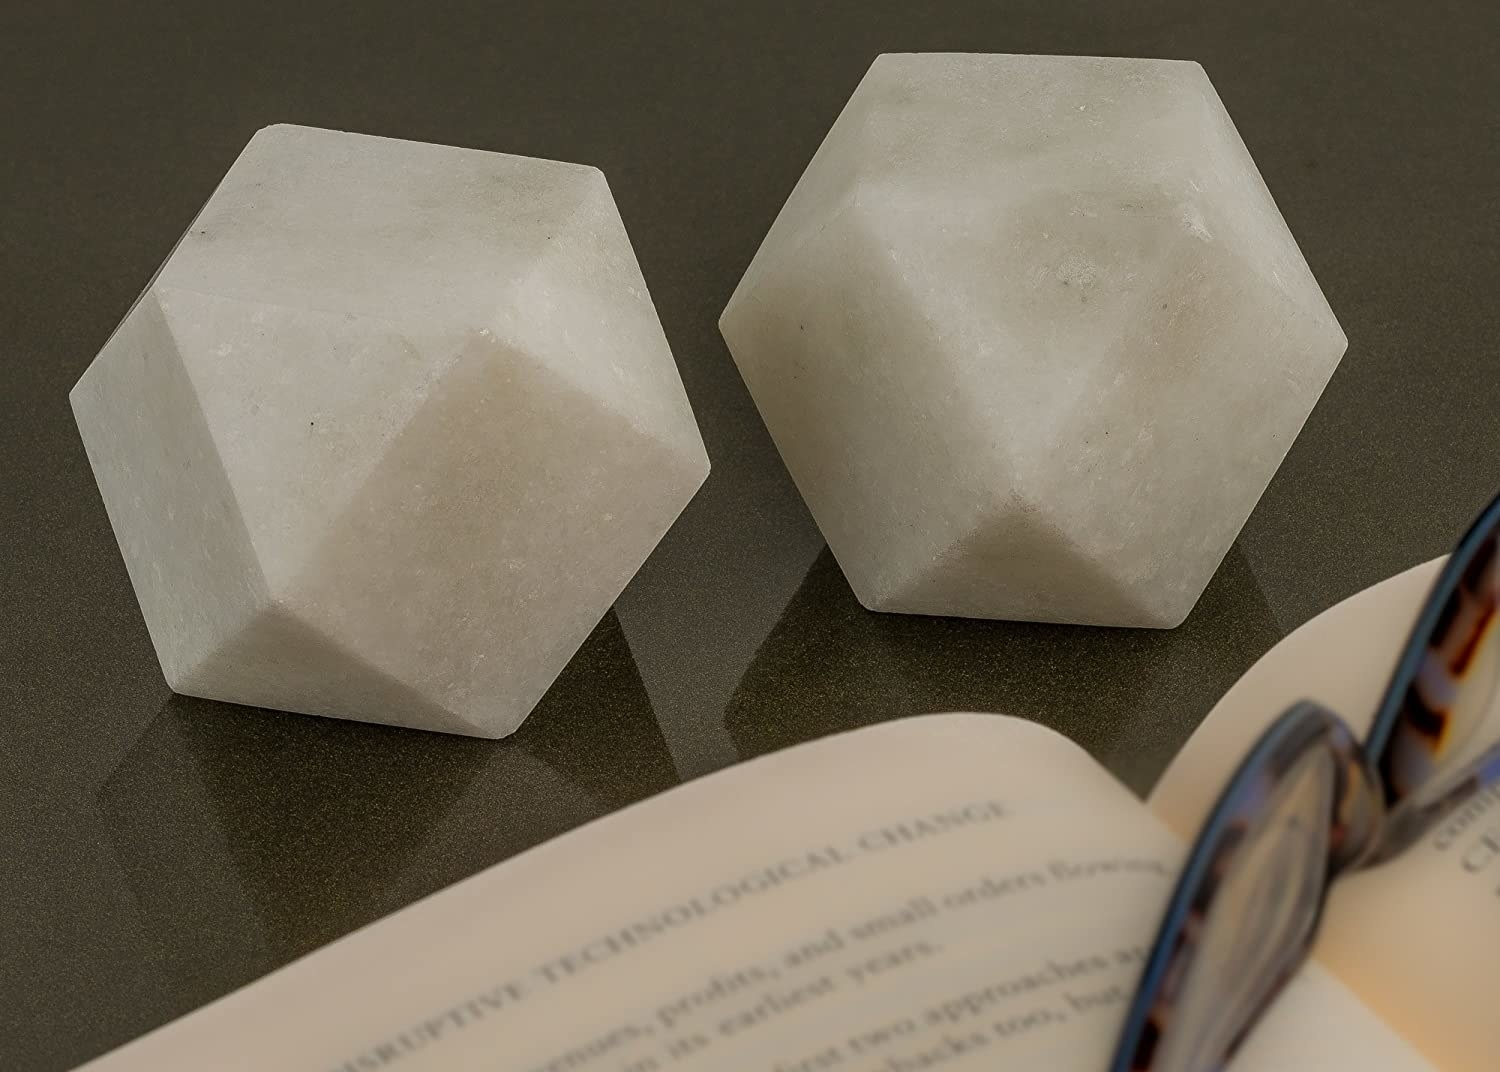 2 marble paperweights in a geometric design.